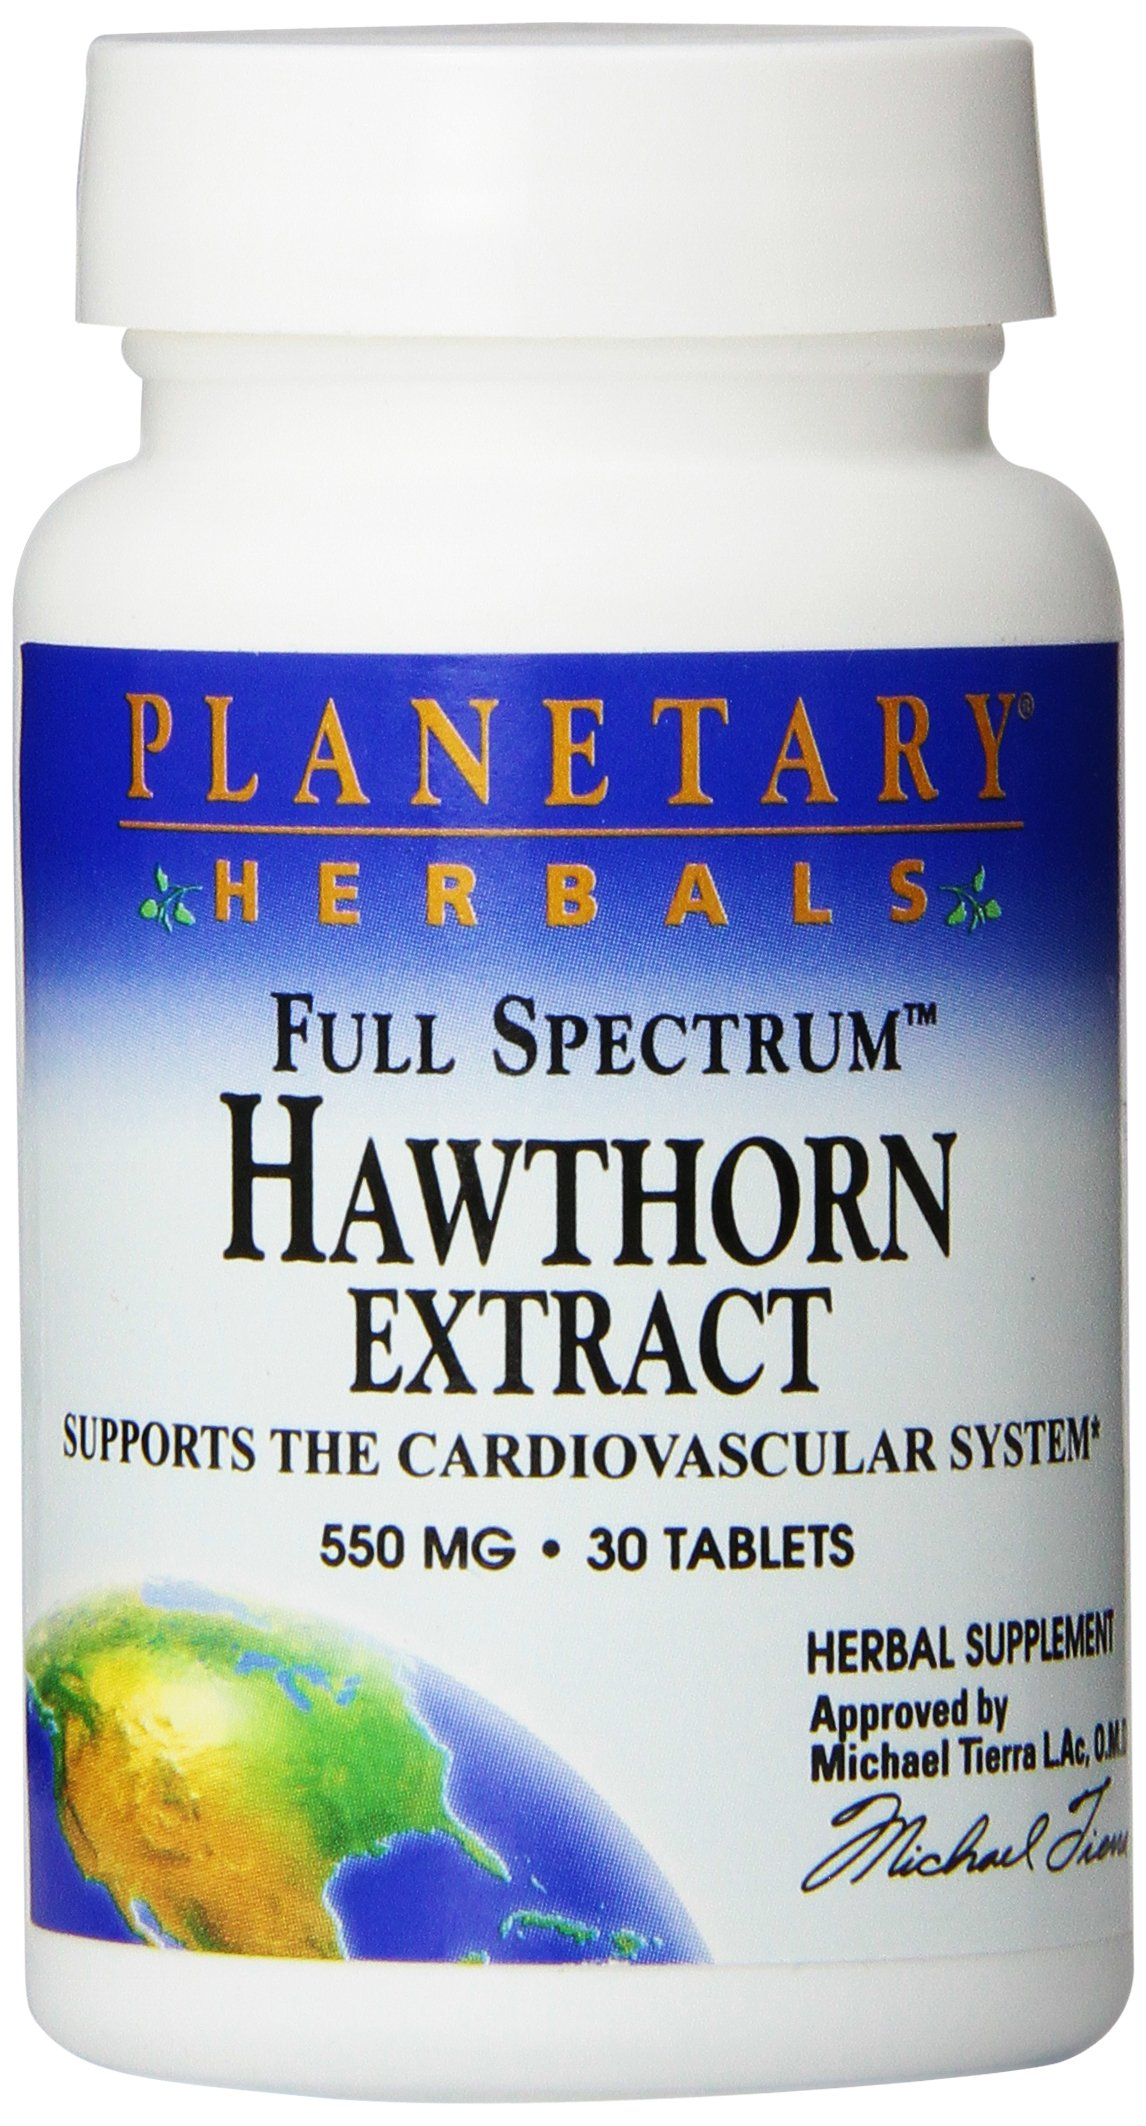 Planetary Herbals Full Spectrum Hawthorn Extract Tablets, 30 Count